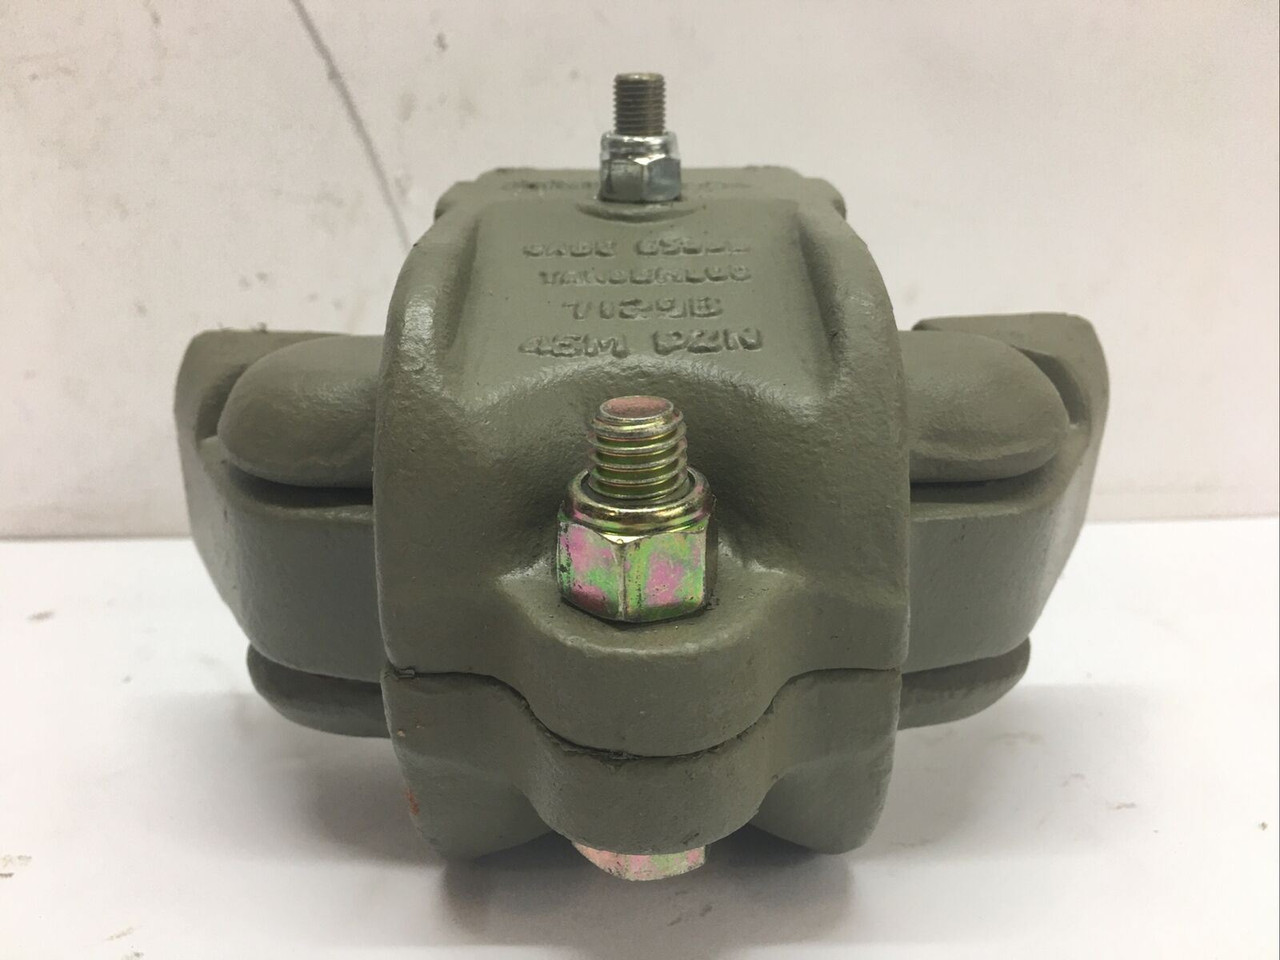 Tandemloc Horizontal Connector 12900BA-1PZ Steel Shipping Containers